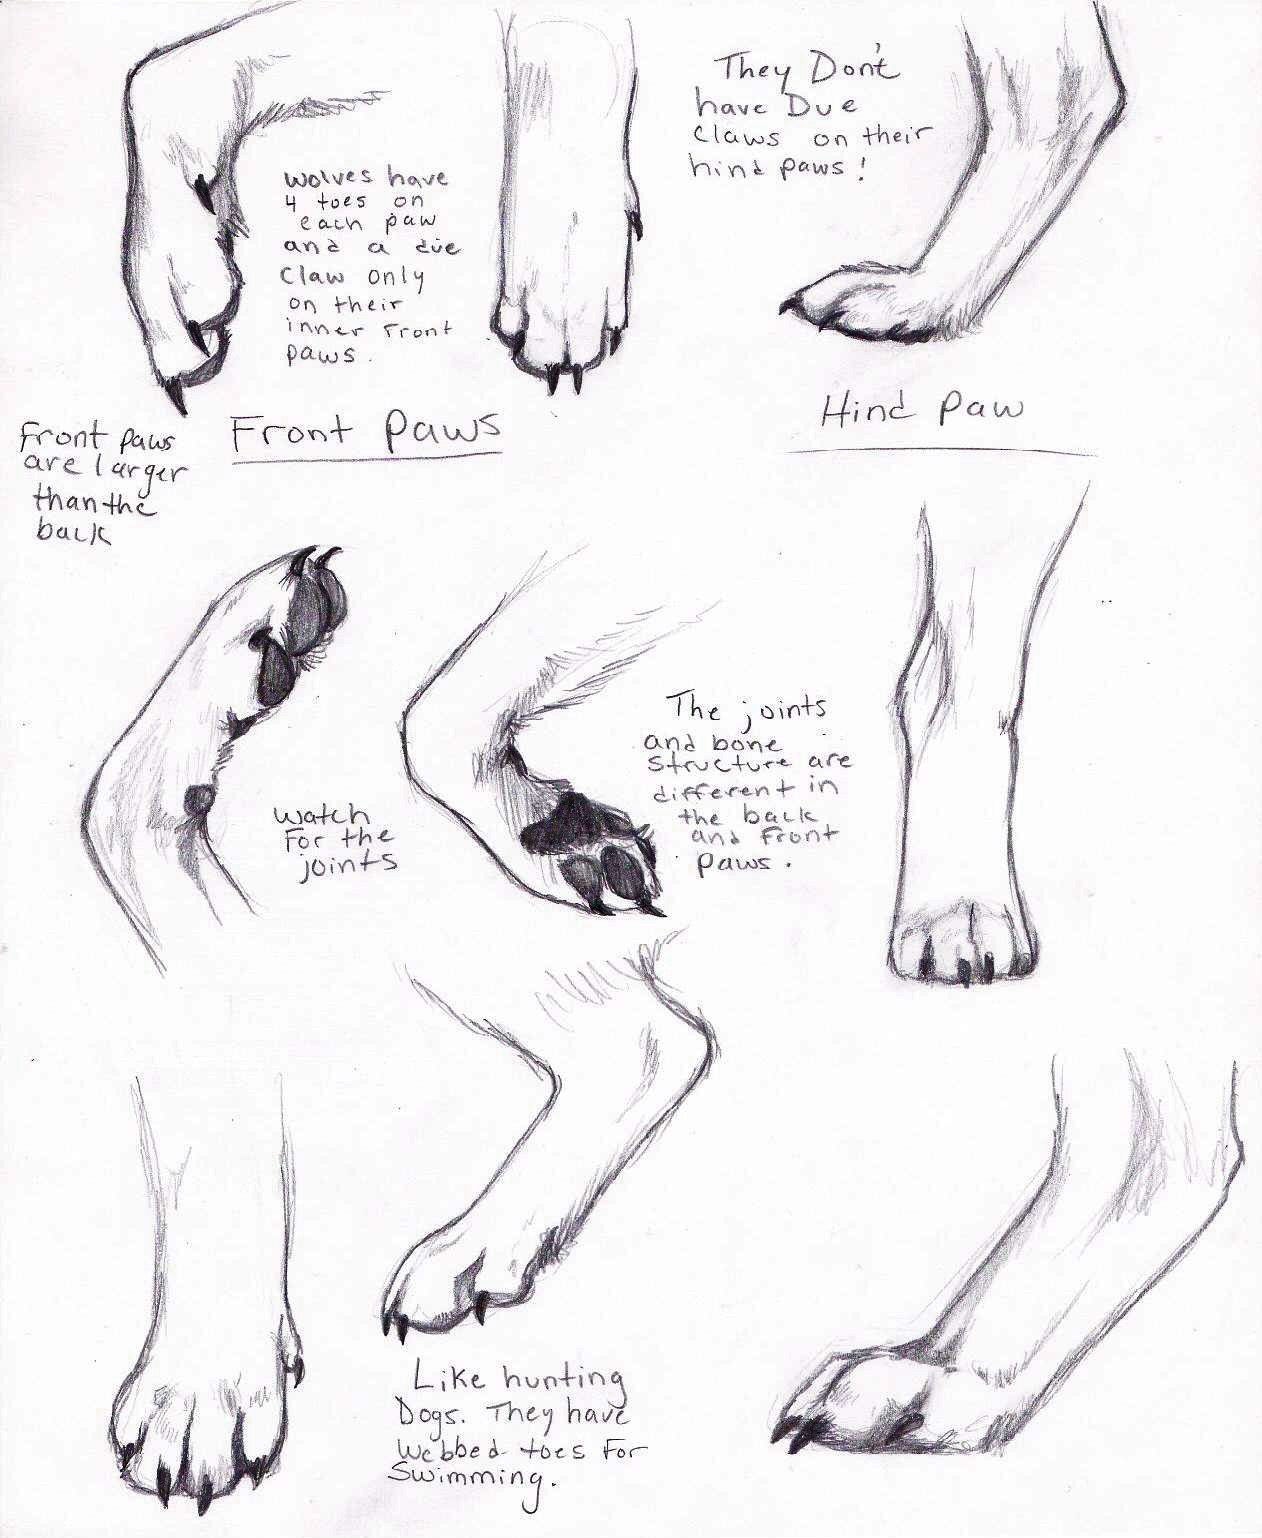 Pin by Amelia Murray on Canine Art | Pinterest | Animal anatomy ...